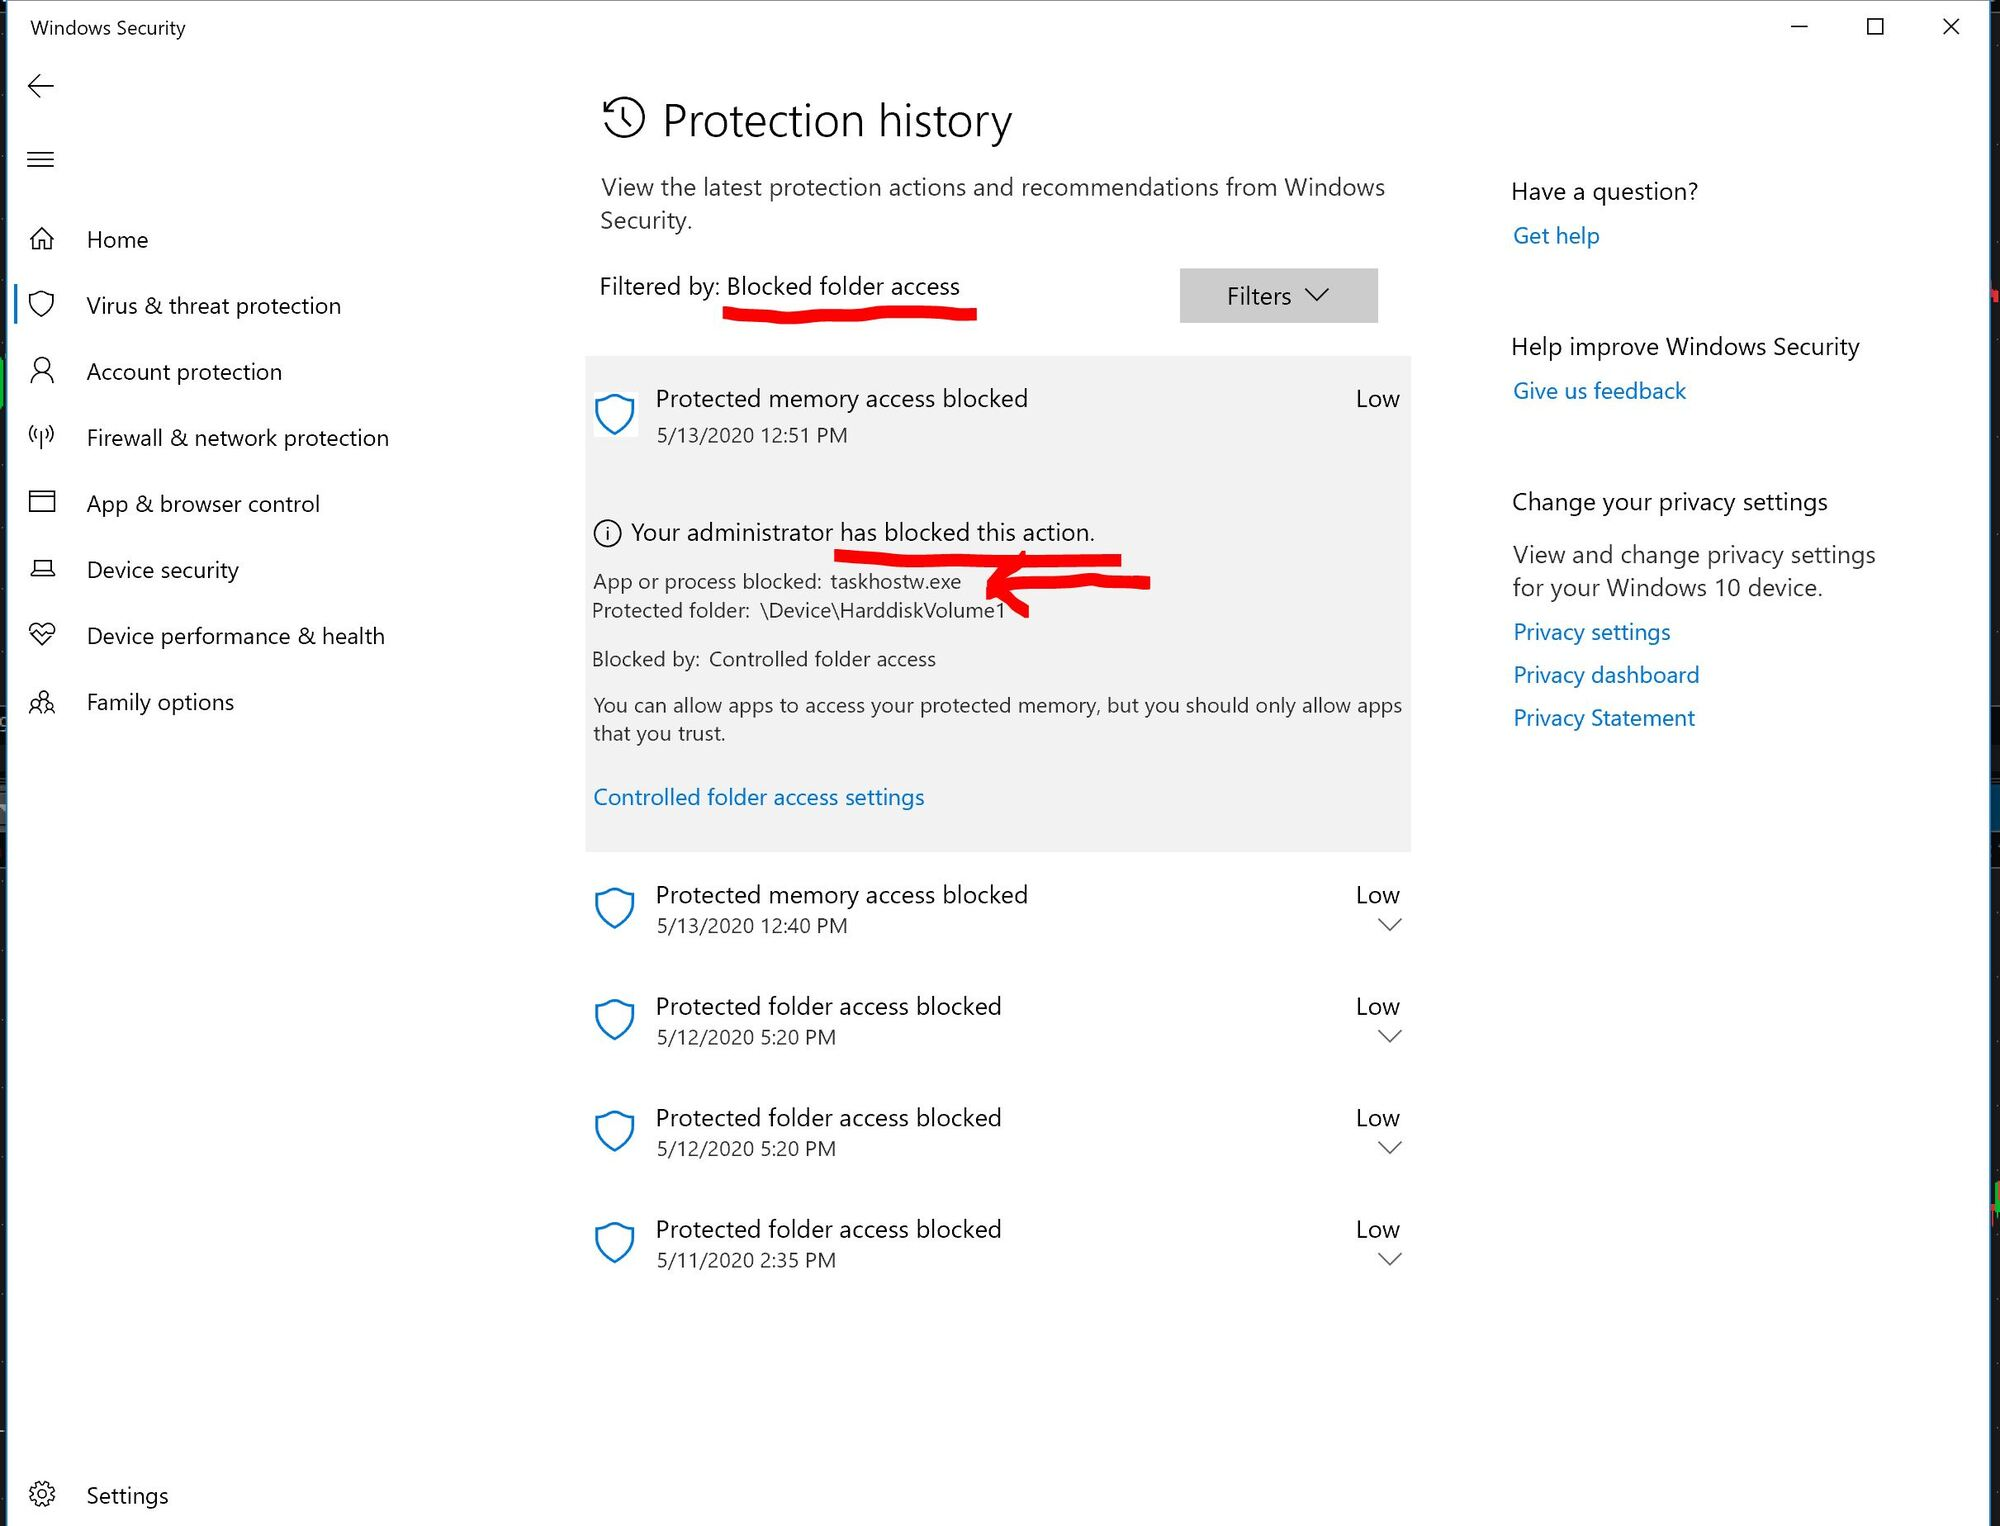 Windows Defender... HOW do you UNBLOCK an app that has been blocked by mistake. 4a86fa55-e60f-452c-894c-8120ce9f071c?upload=true.jpg